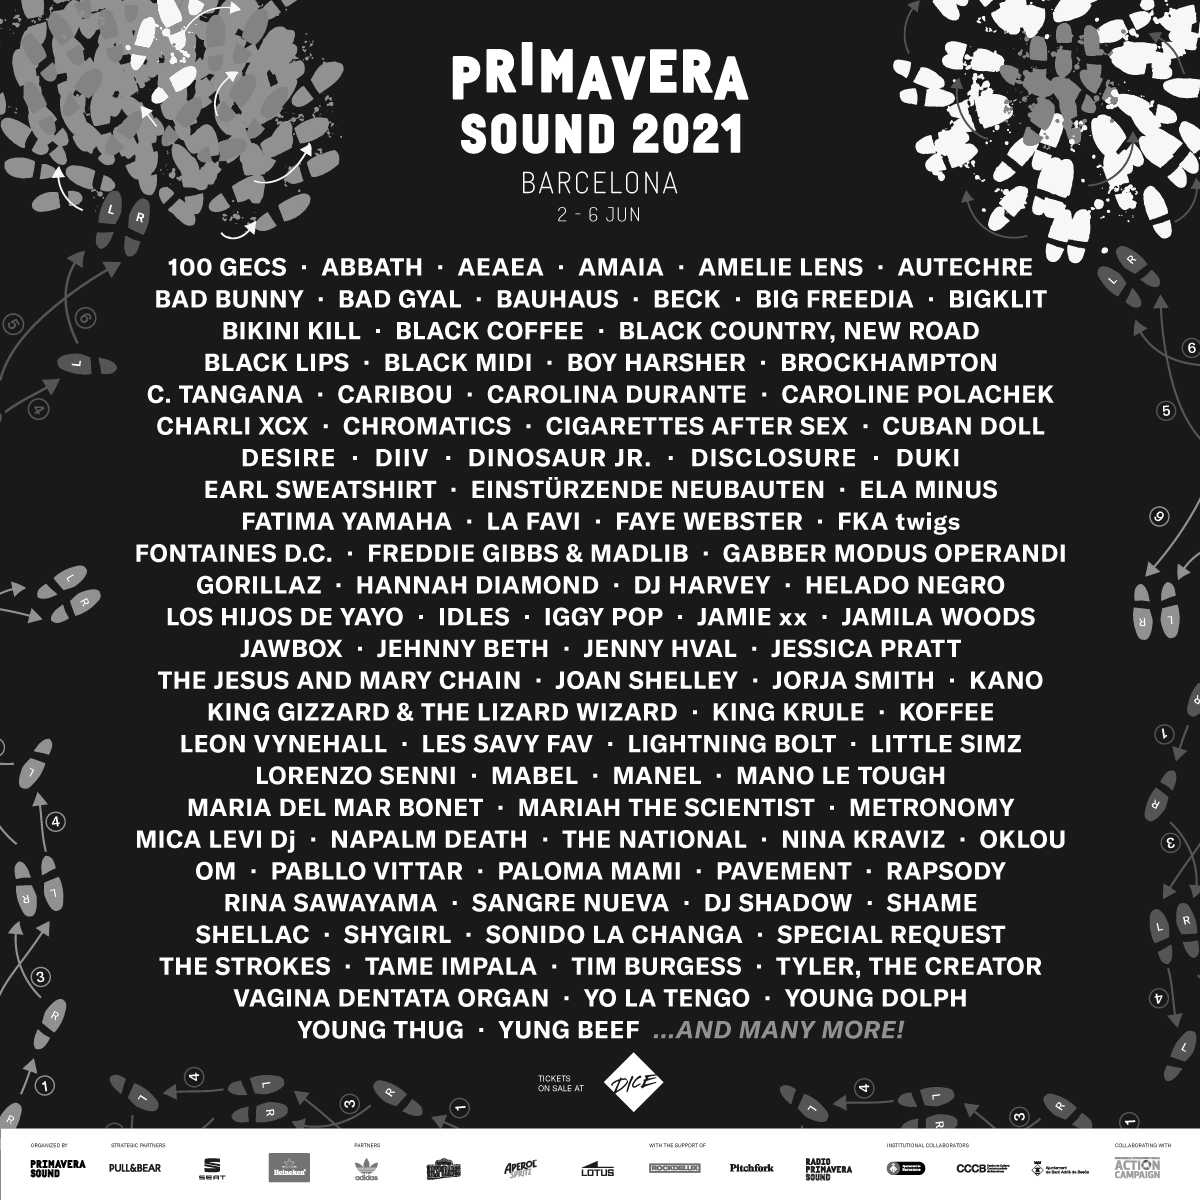 back @Primavera_Sound in june 2021. hope to see you...